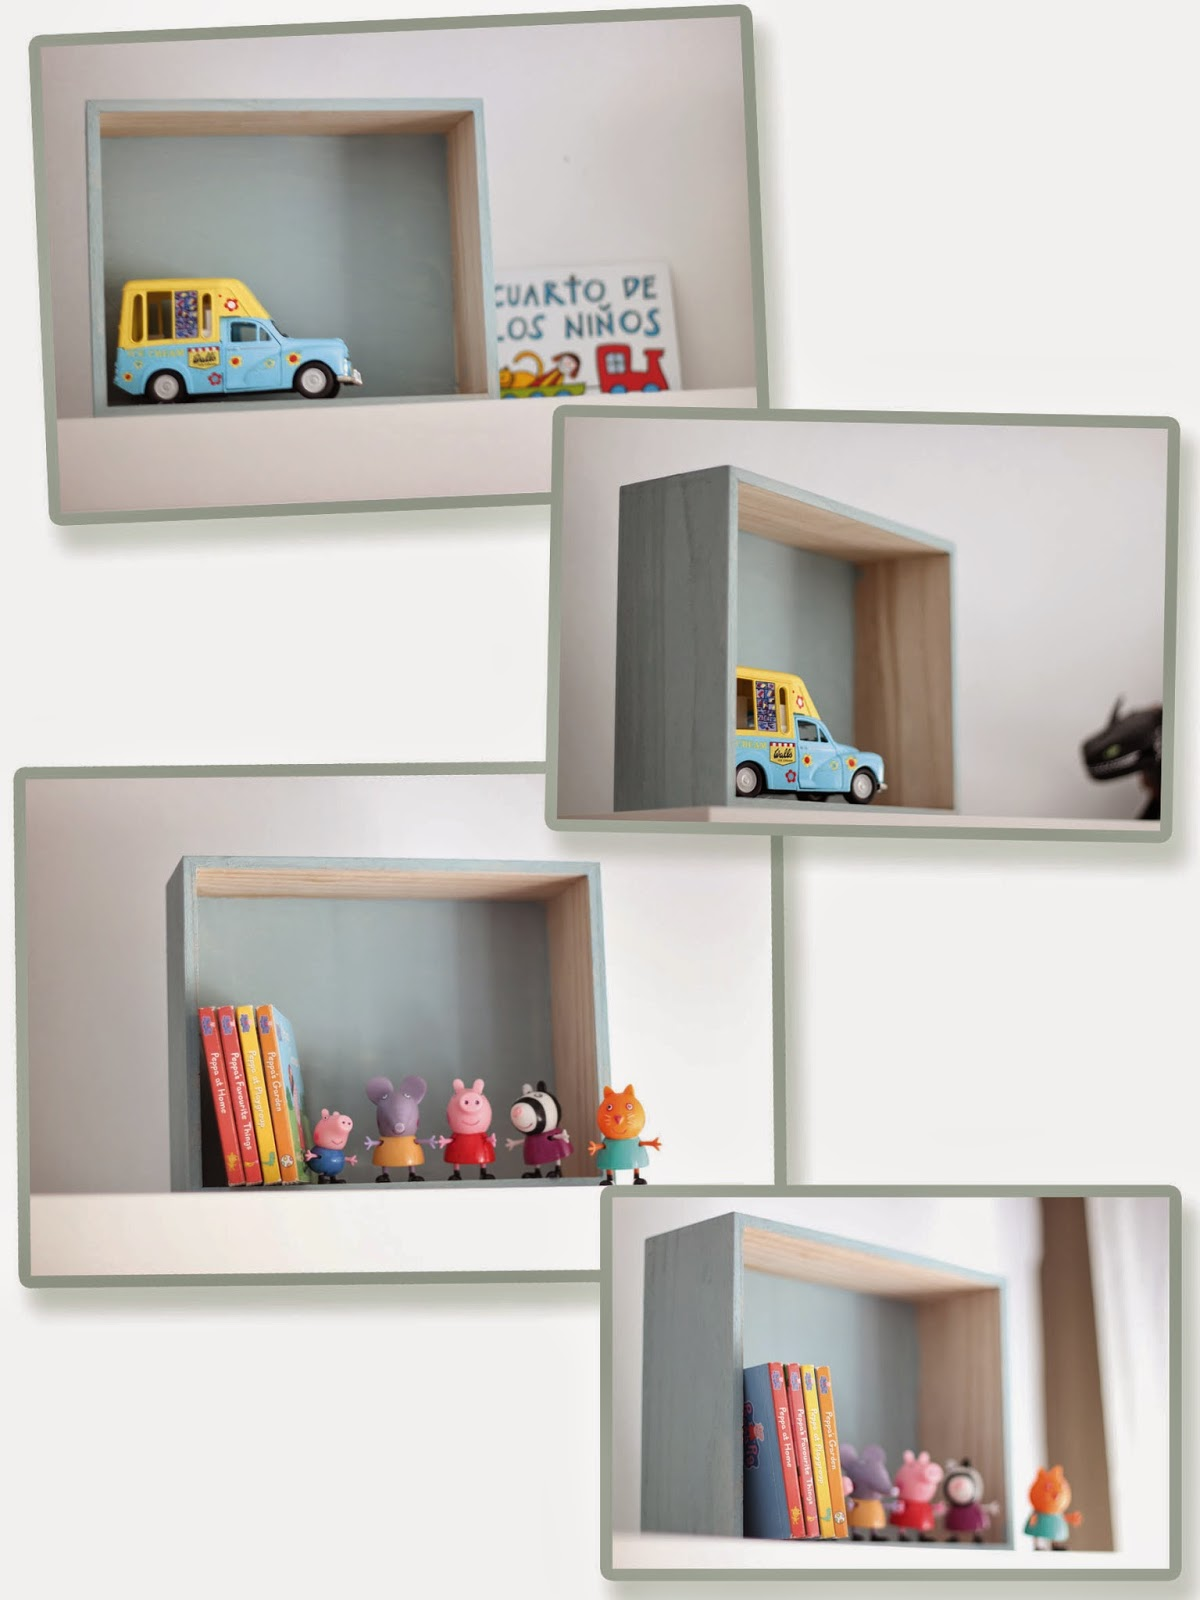 photo-proyectos-DIY-pintar_con_chalkpaint-estante-caja